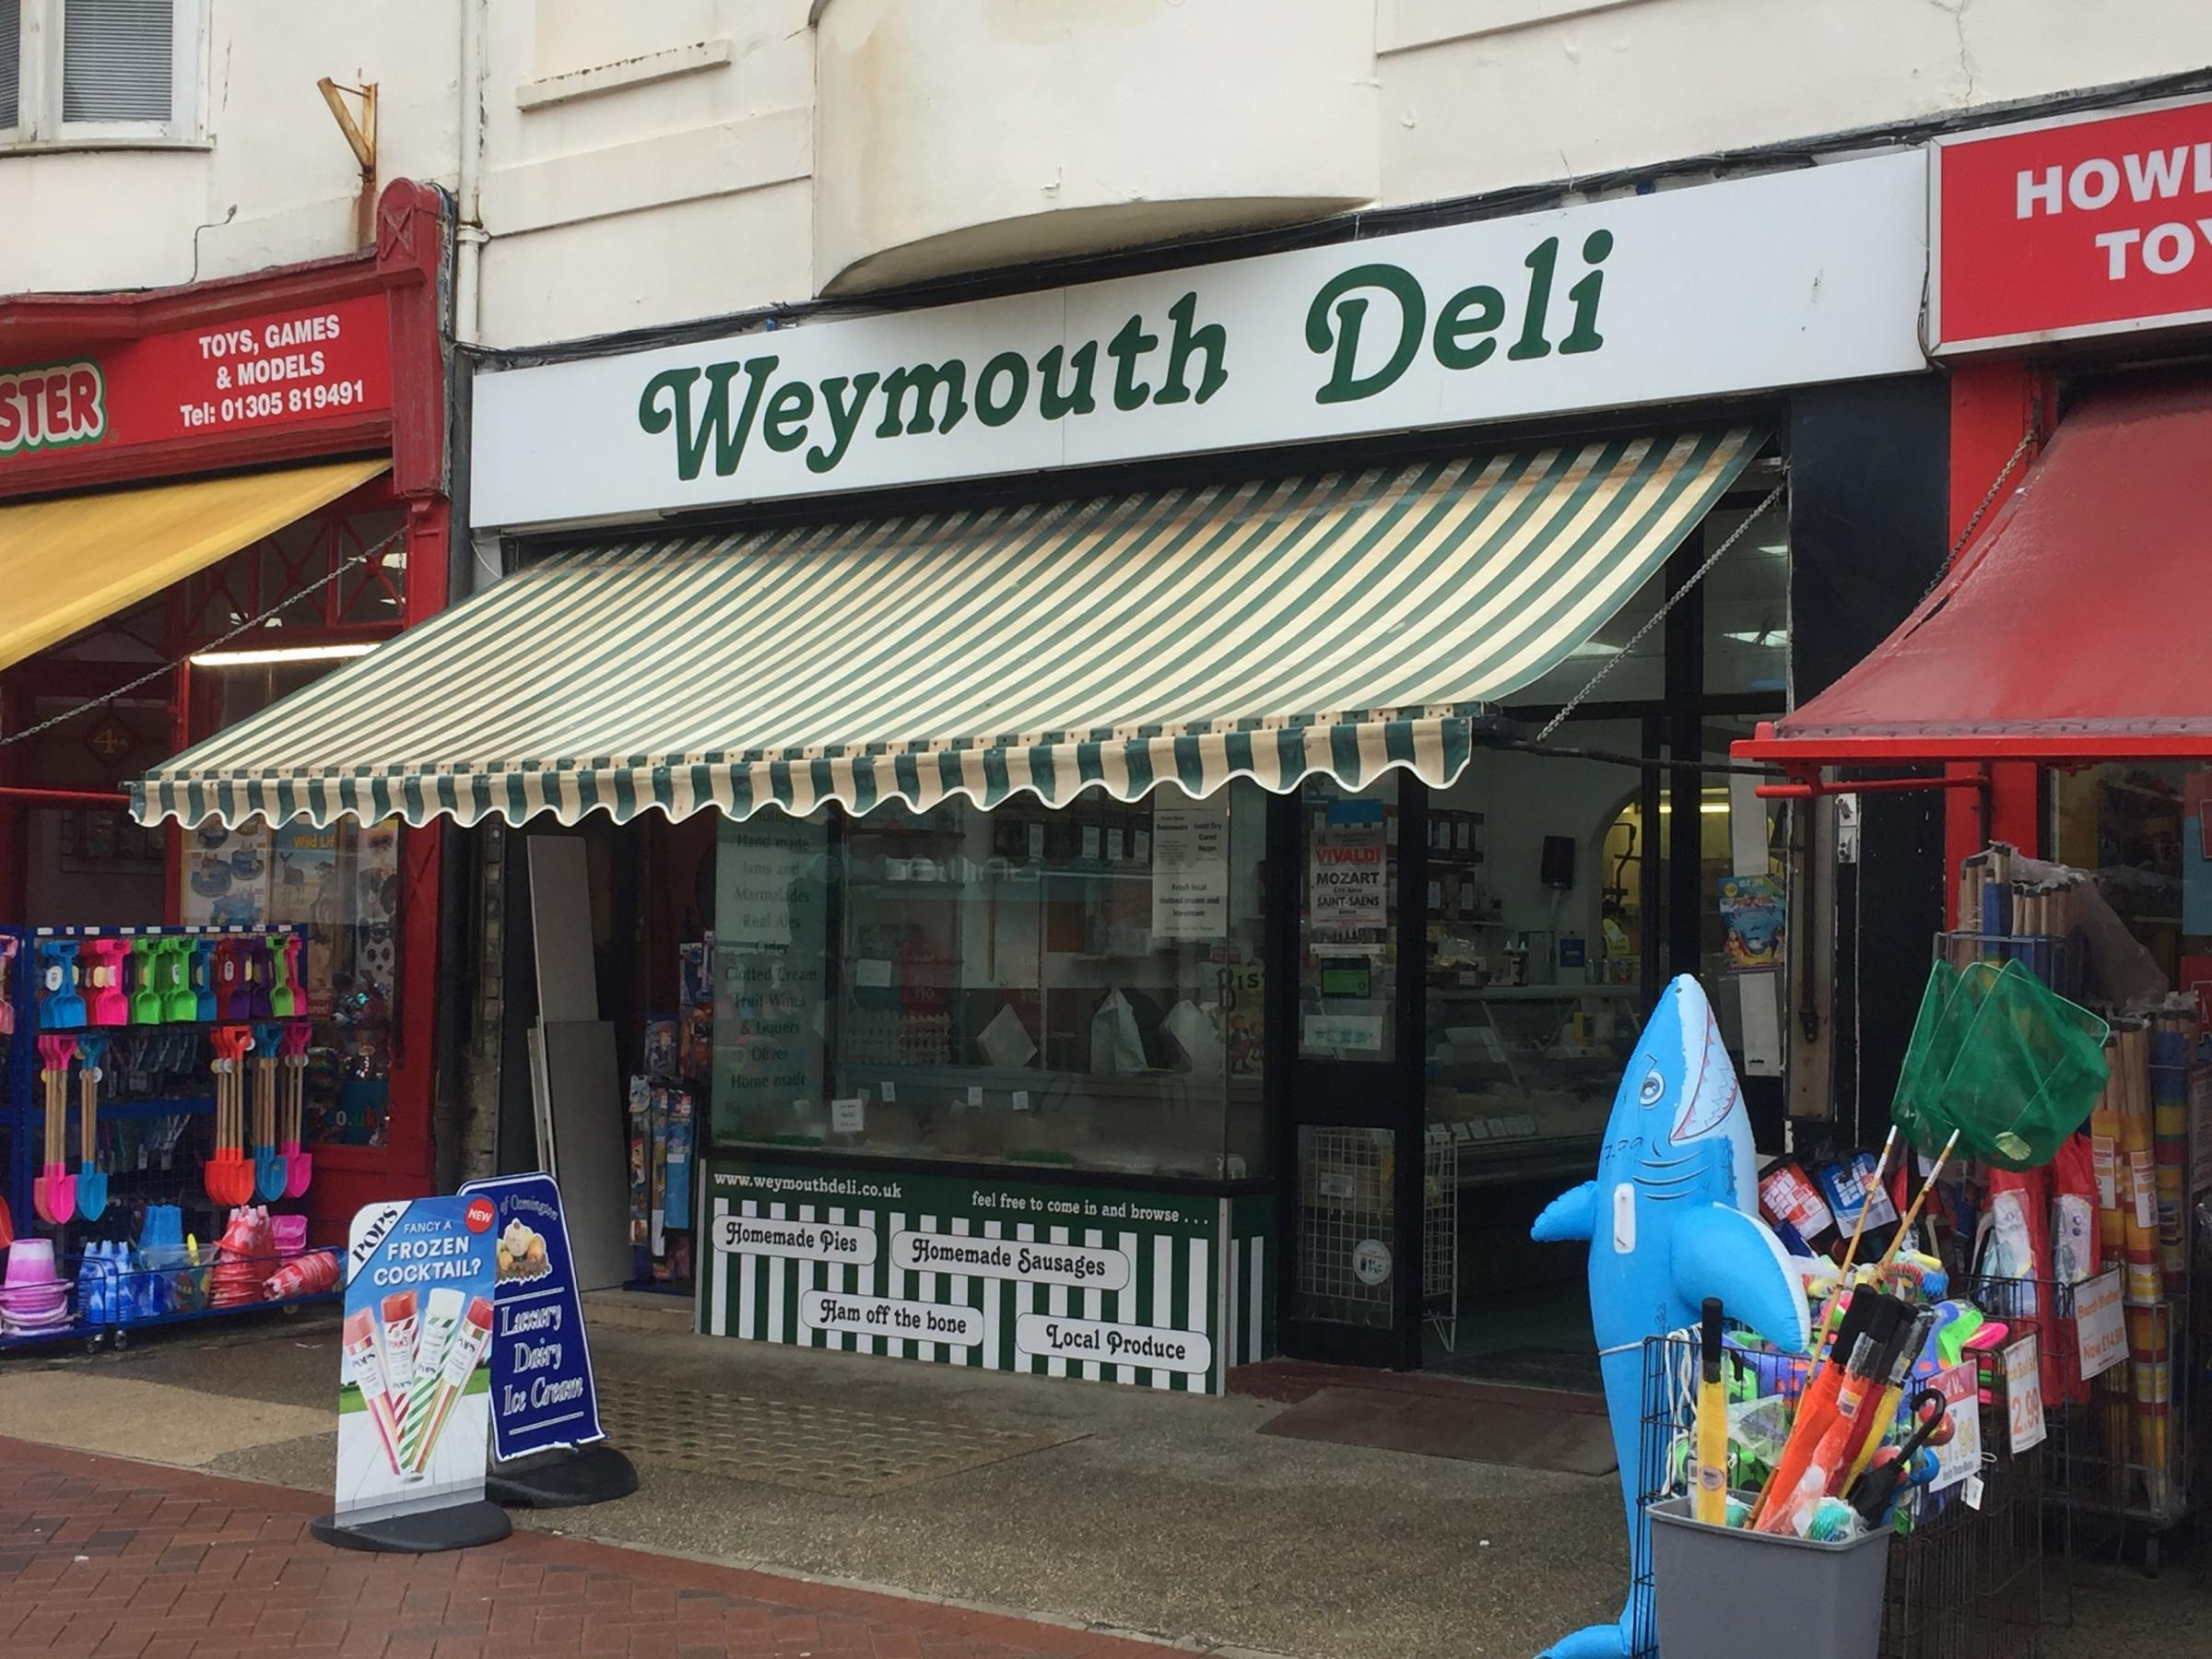 Weymouth Deli due to close soon after 45 years in business